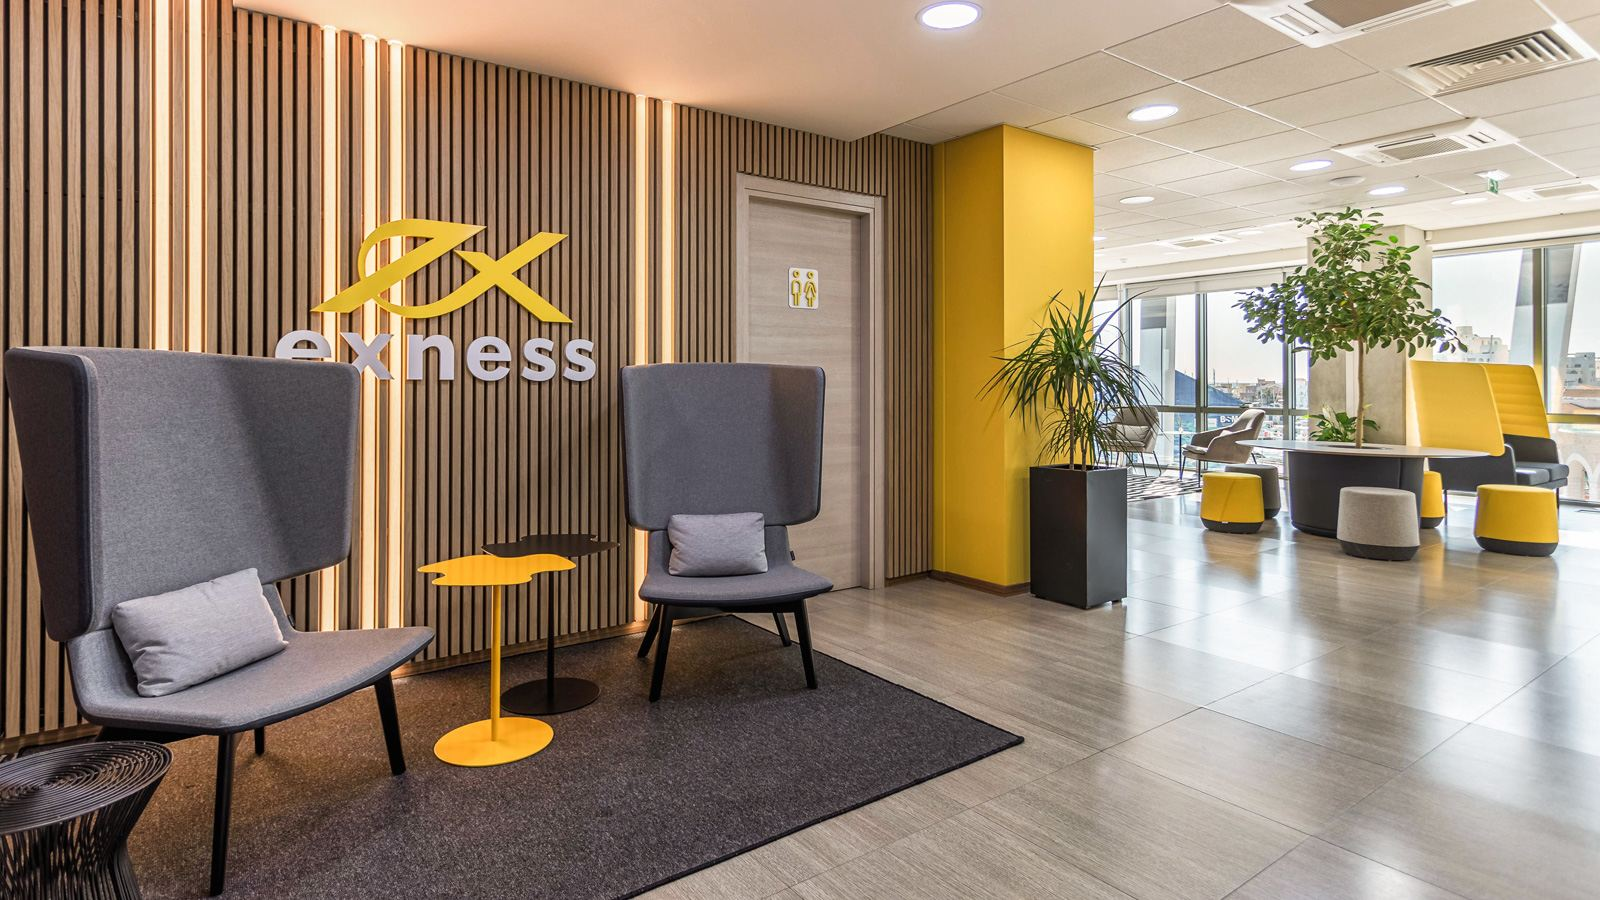 A modern and branded office interior with a black, grey and yellow colour theme, designed for Exness Forex company.